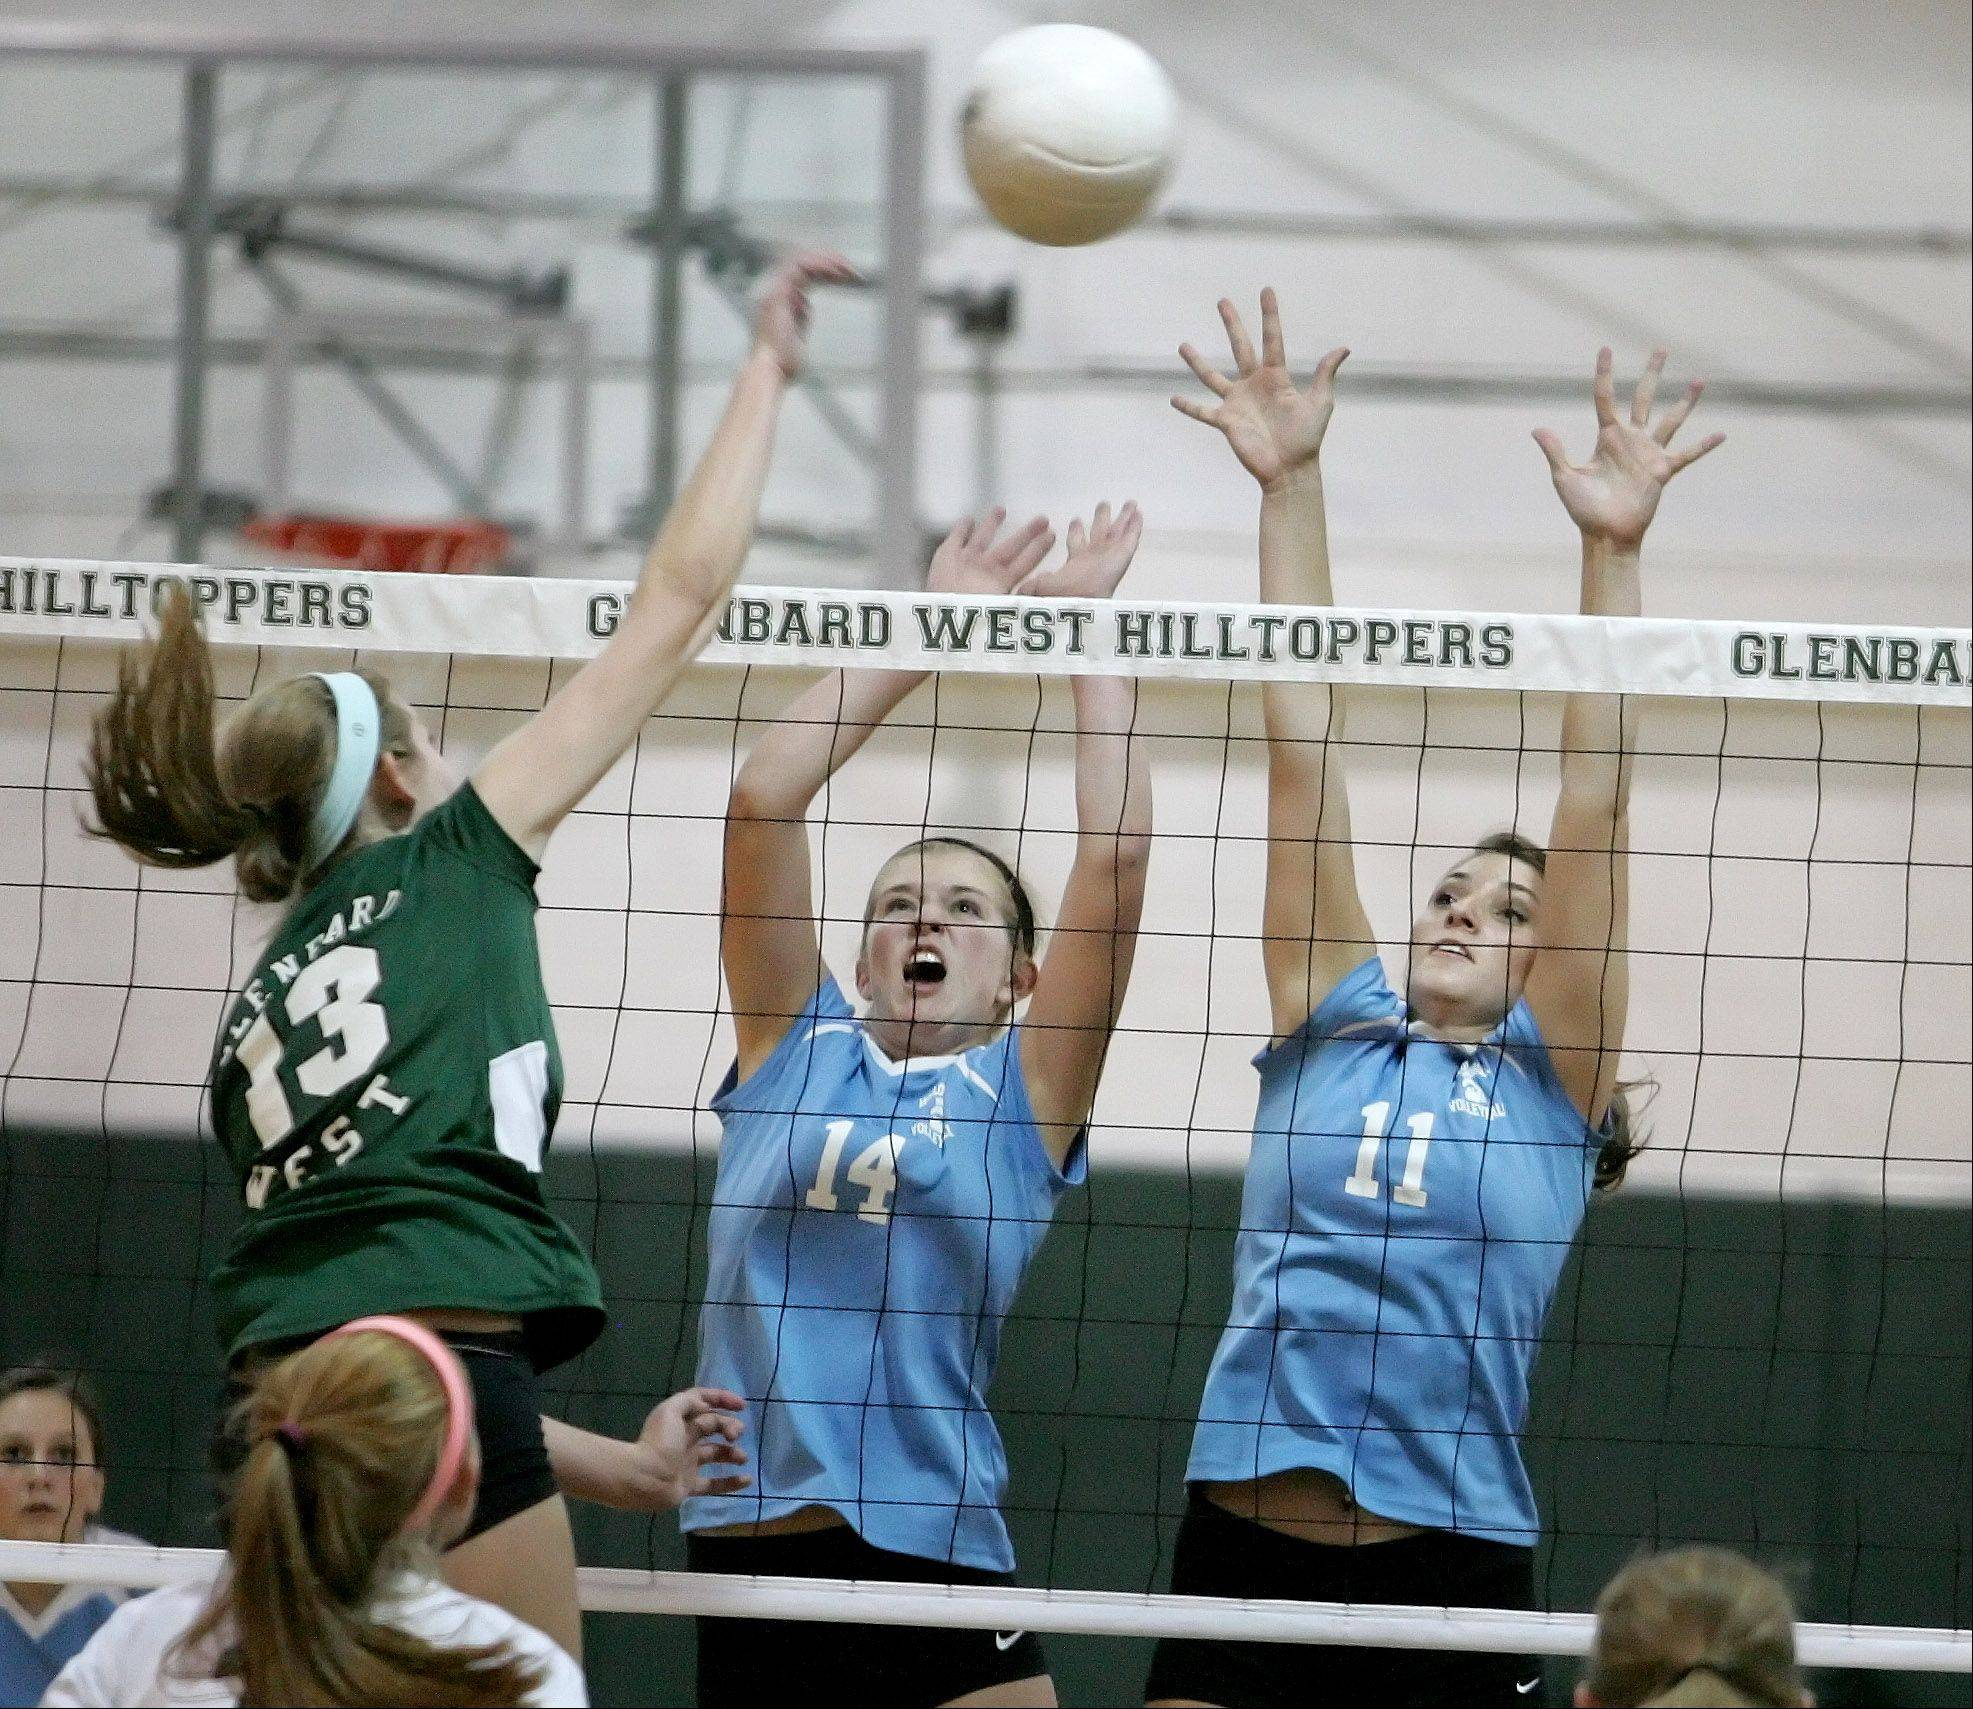 Megan Wagner, left, of Glenbard West htis the ball over Lauren Carroll, center and Michelle Herz, right, of Willowbrook in girls volleyball action on Monday in Glen Ellyn.